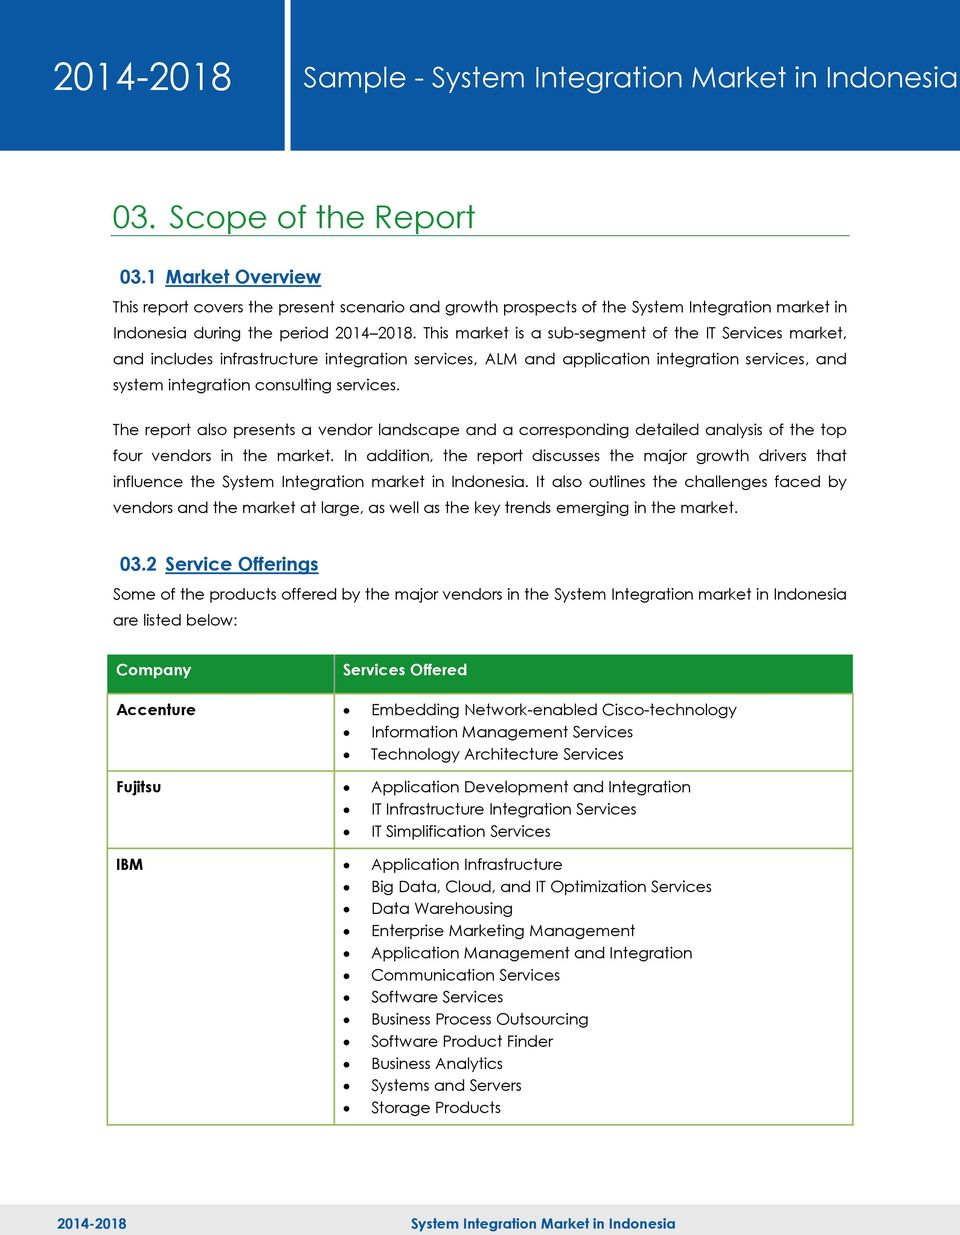 The report also presents a vendor landscape and a corresponding detailed analysis of the top four vendors in the market.